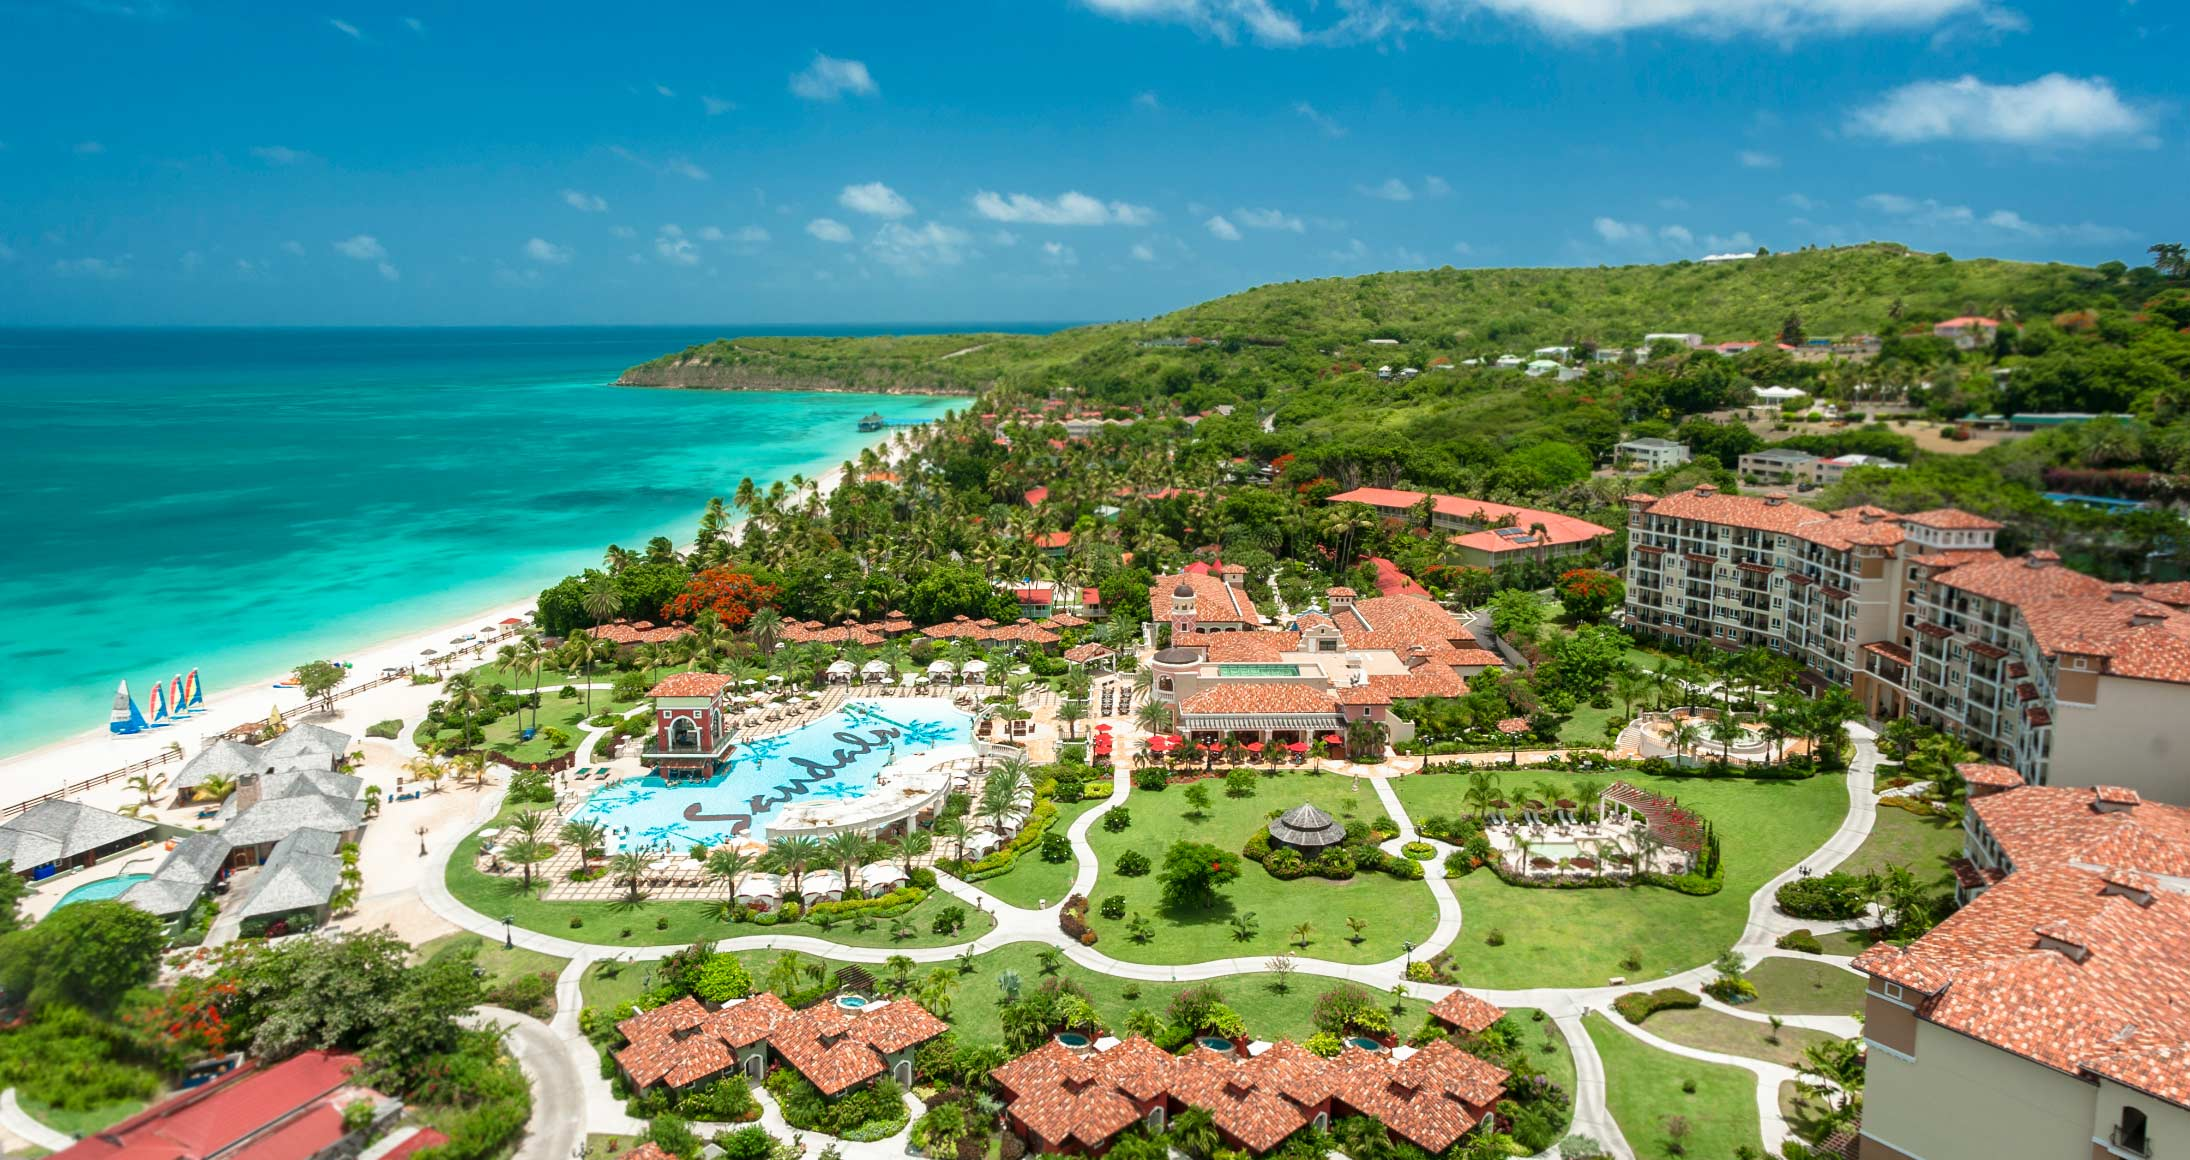 dfaf4c2a9cf6 Sandals Grande Antigua - All-Inclusive Luxury Resort in St. Johns